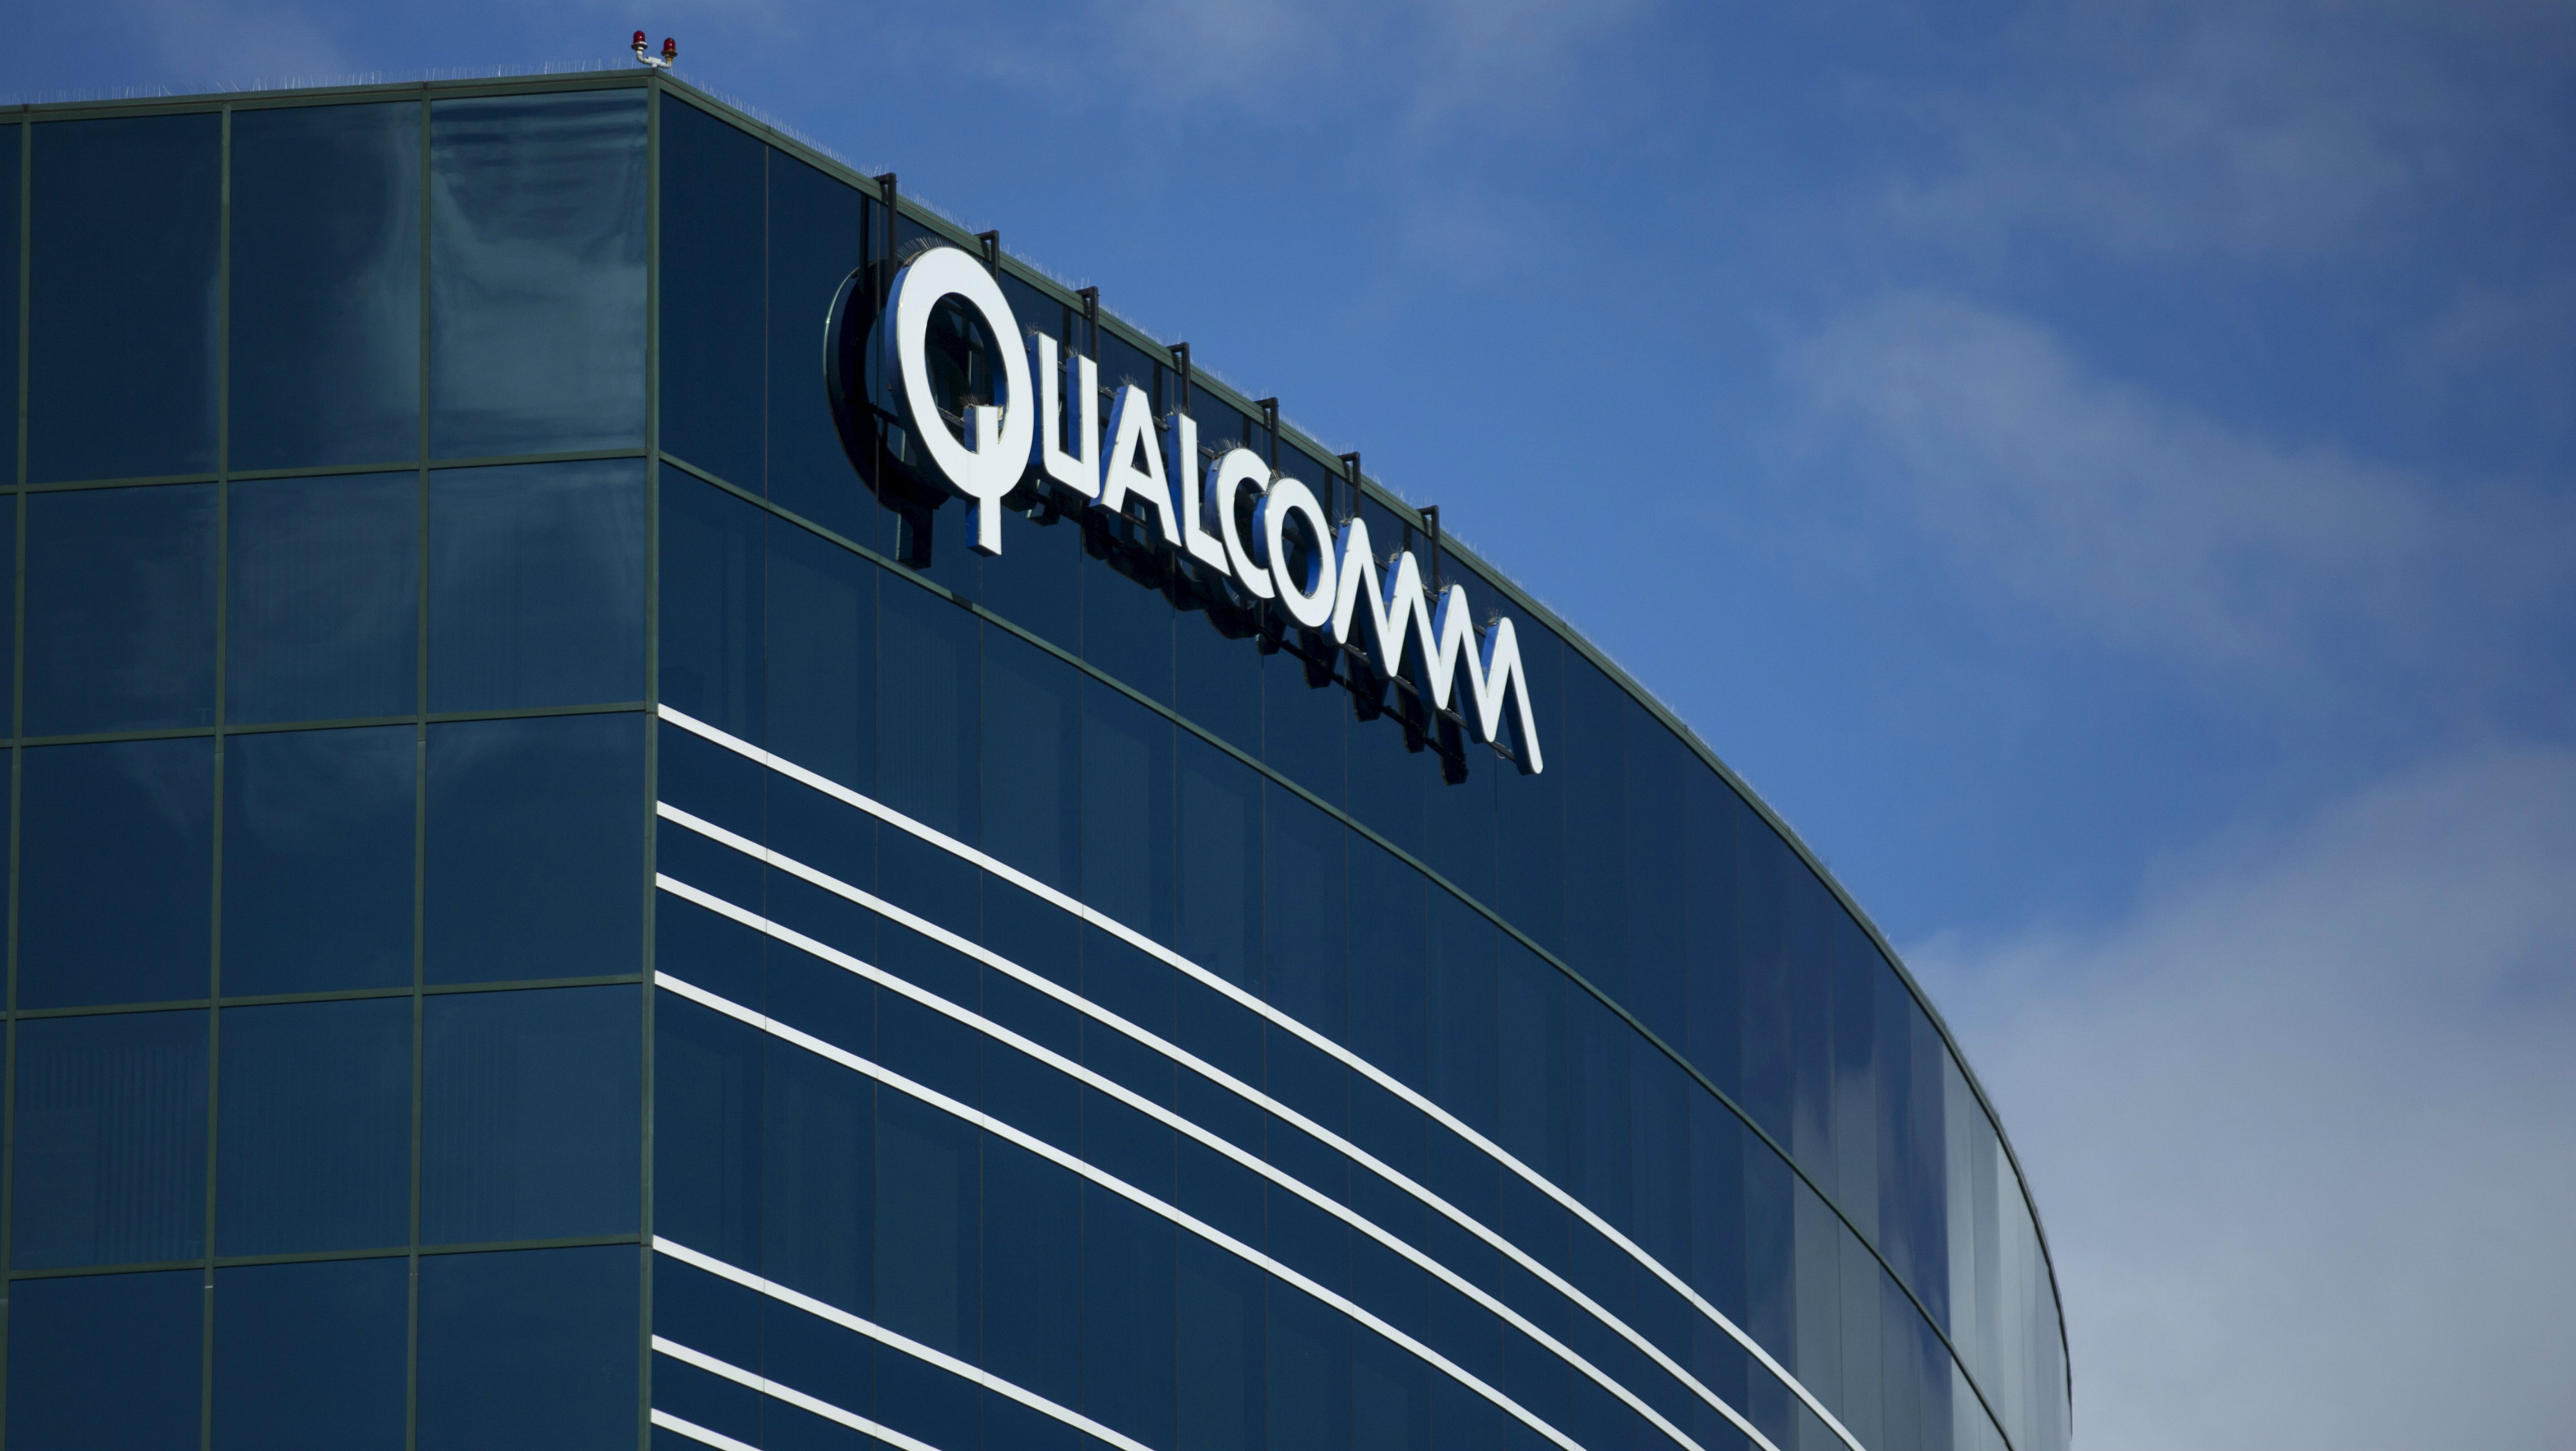 One of many Qualcomm buildings is shown in San